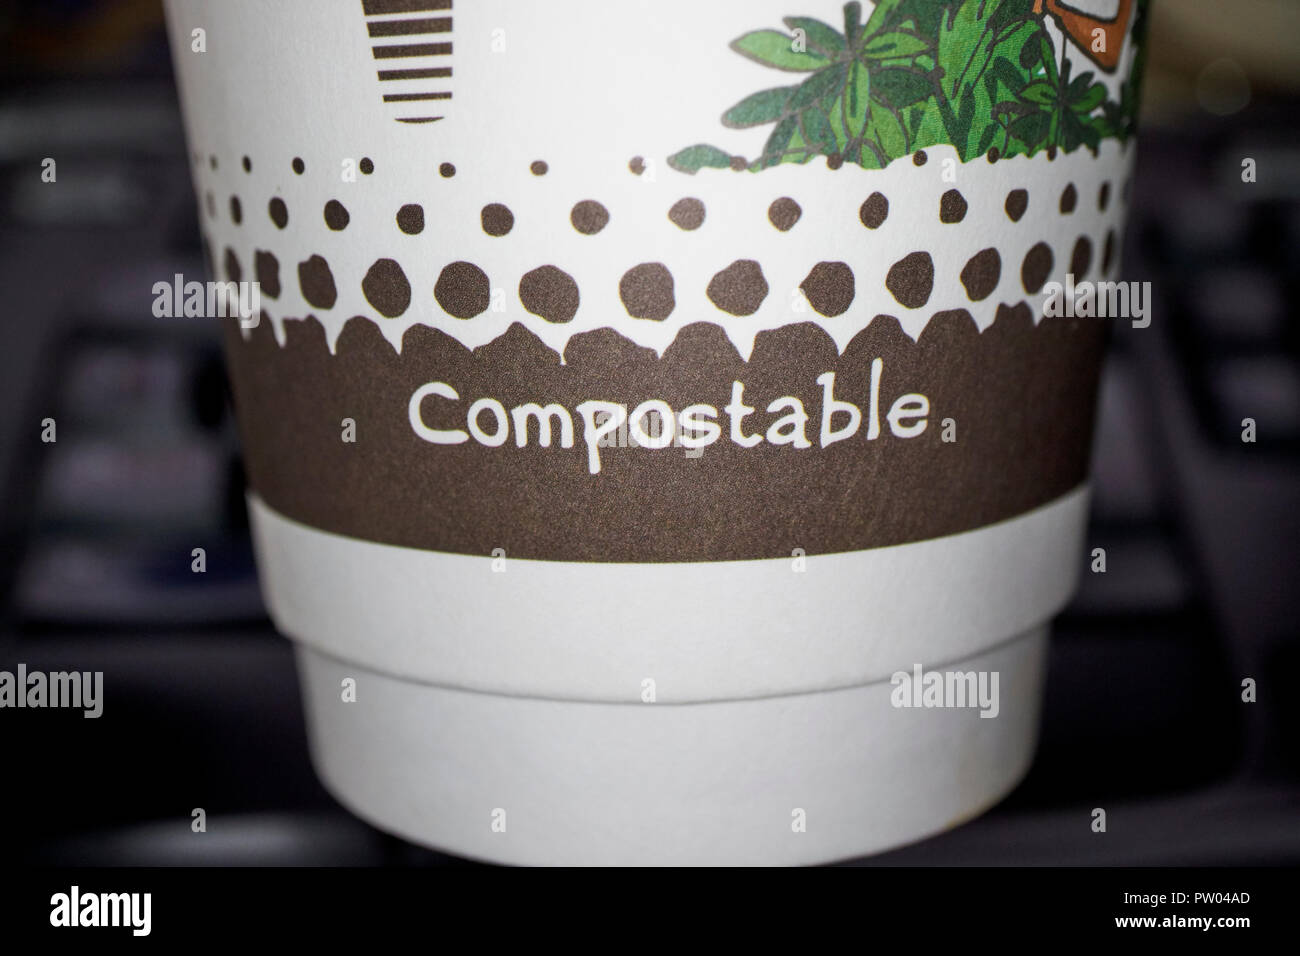 compostable disposable coffee cup - Stock Image